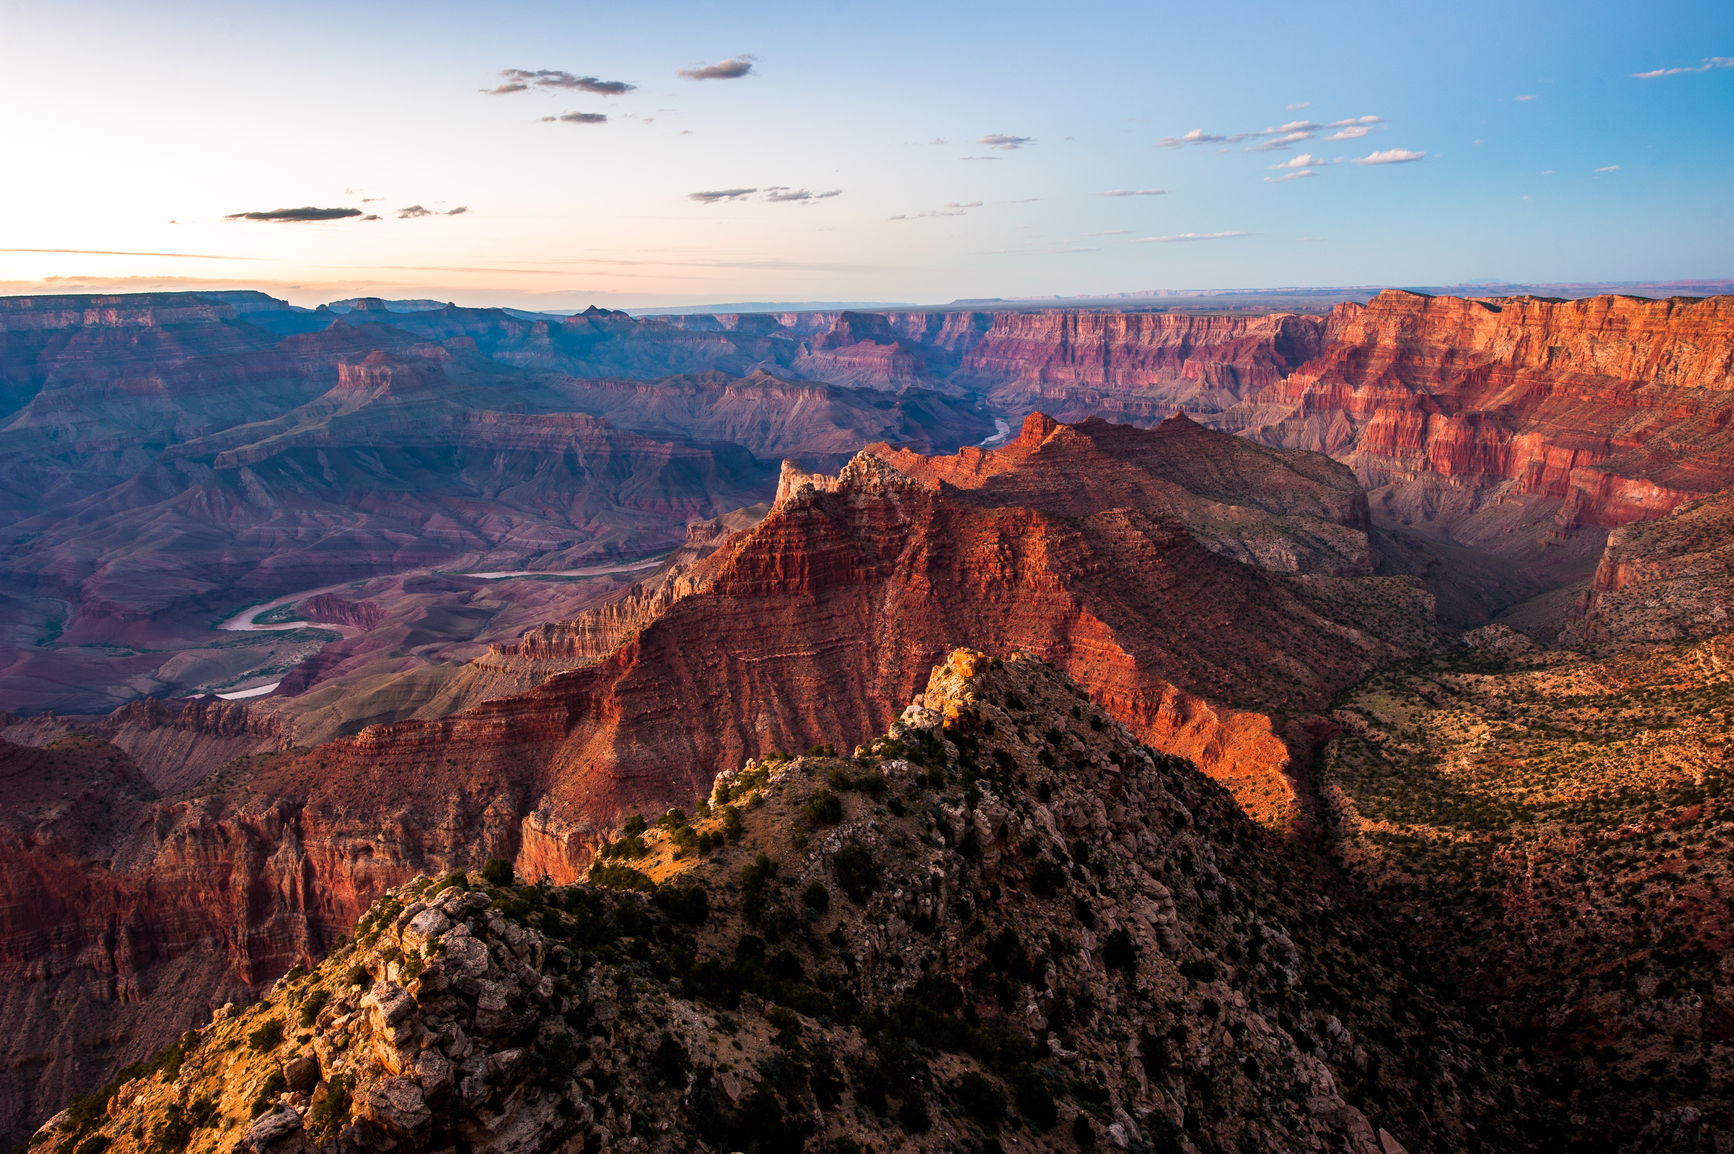 Sunset scenery from Grand Canyon South Rim, Grand Canyon National Park, USA